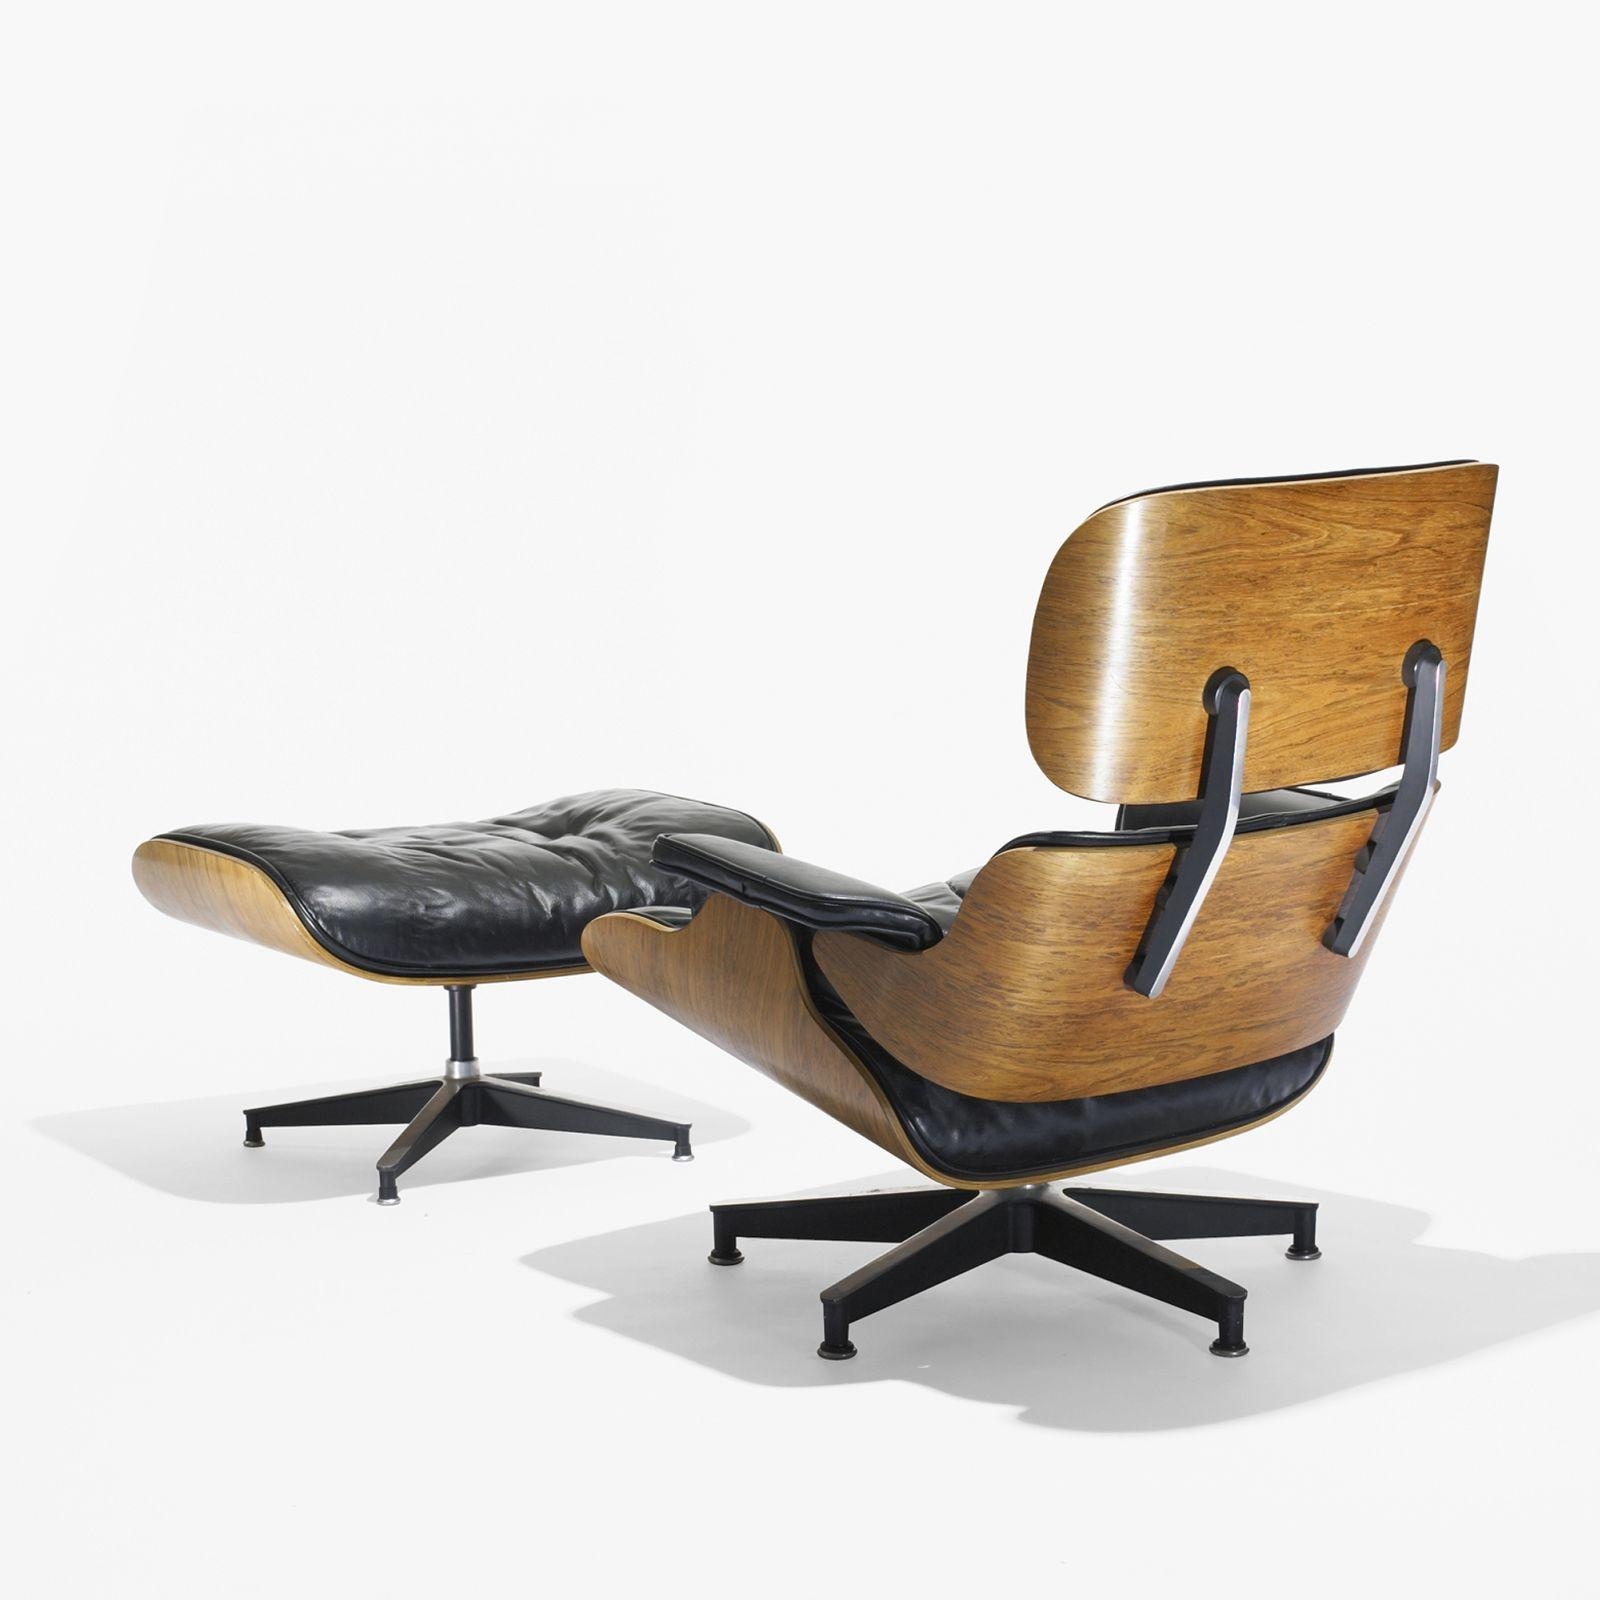 Cool Charles And Ray Eames 670 Lounge Chair And 671 Ottoman Dailytribune Chair Design For Home Dailytribuneorg